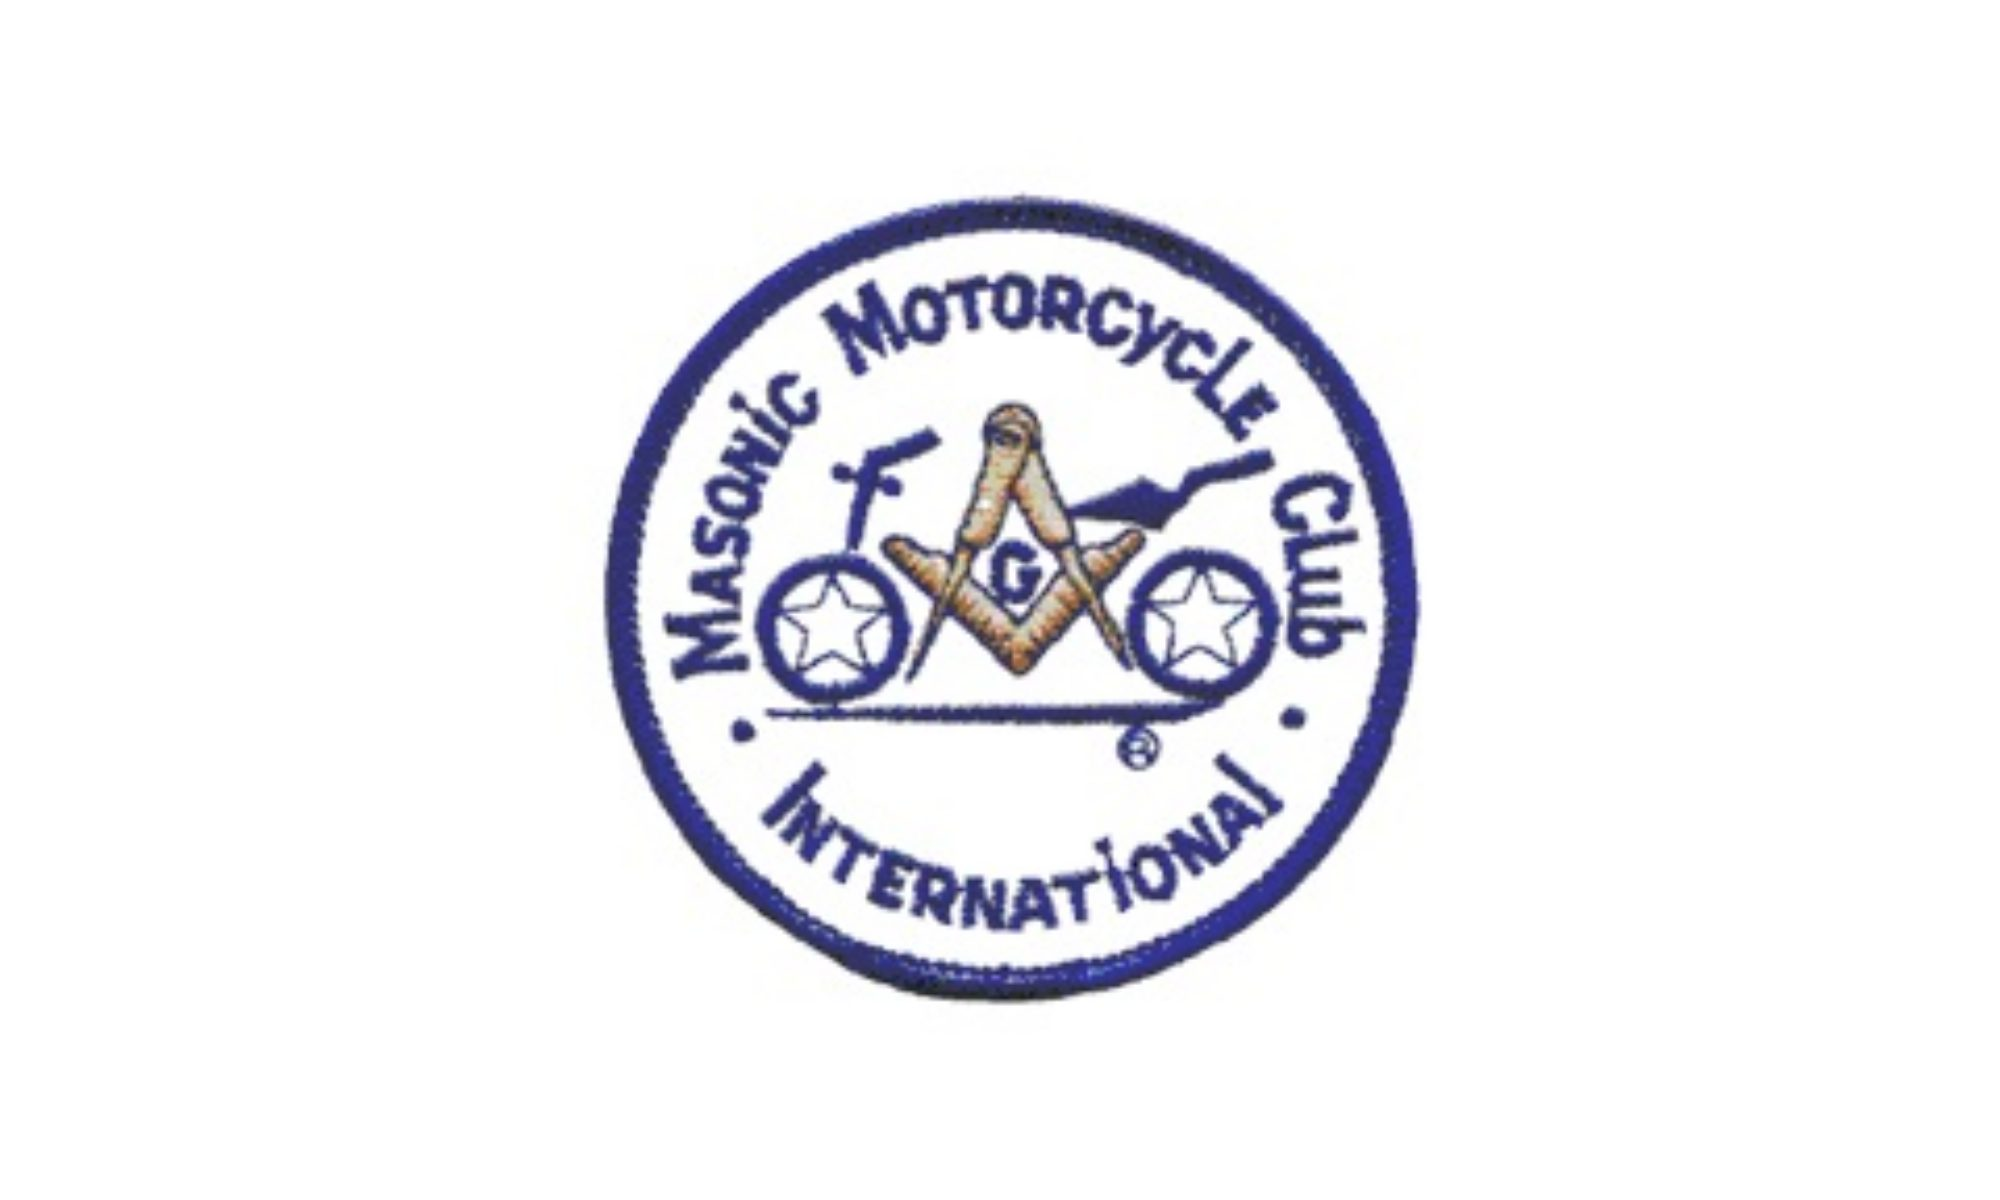 Masonic Motorcycle Club International